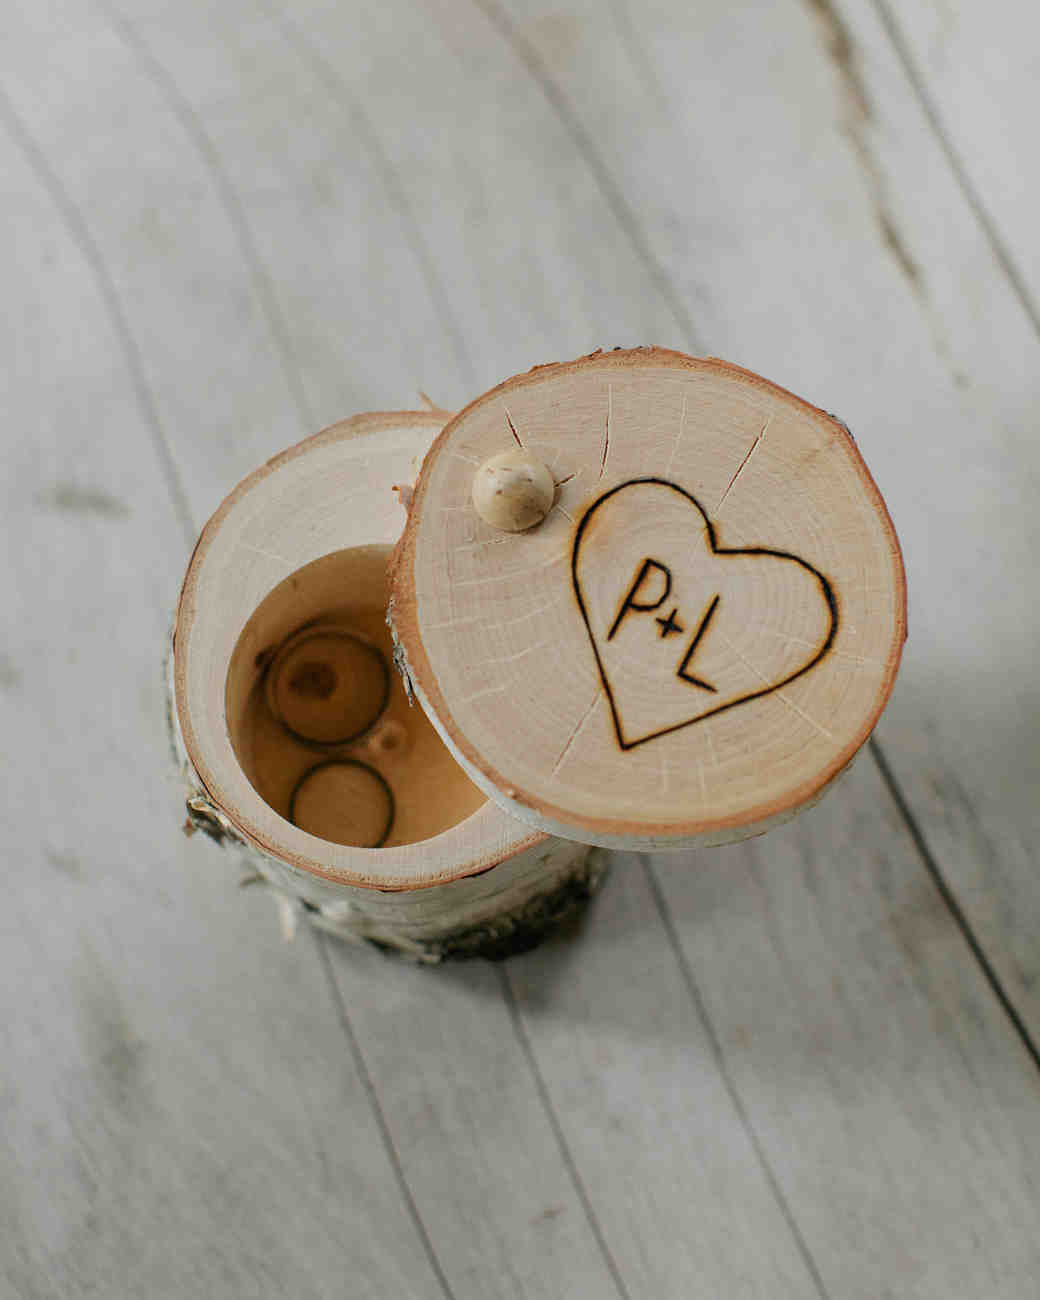 wedding ring box ideas converting holder into keepsake keepsake wedding rings Consider It Part of the D cor